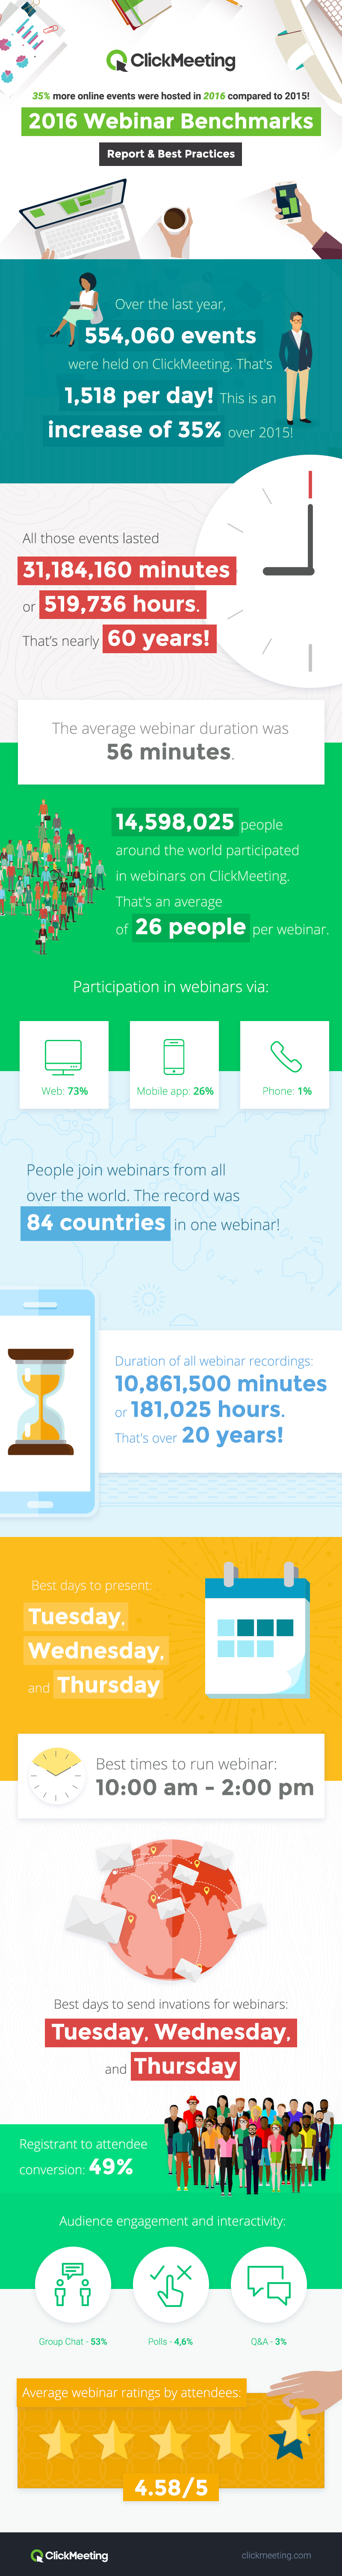 New Report Shows How Best To Pitch a Webinar [Infographic]